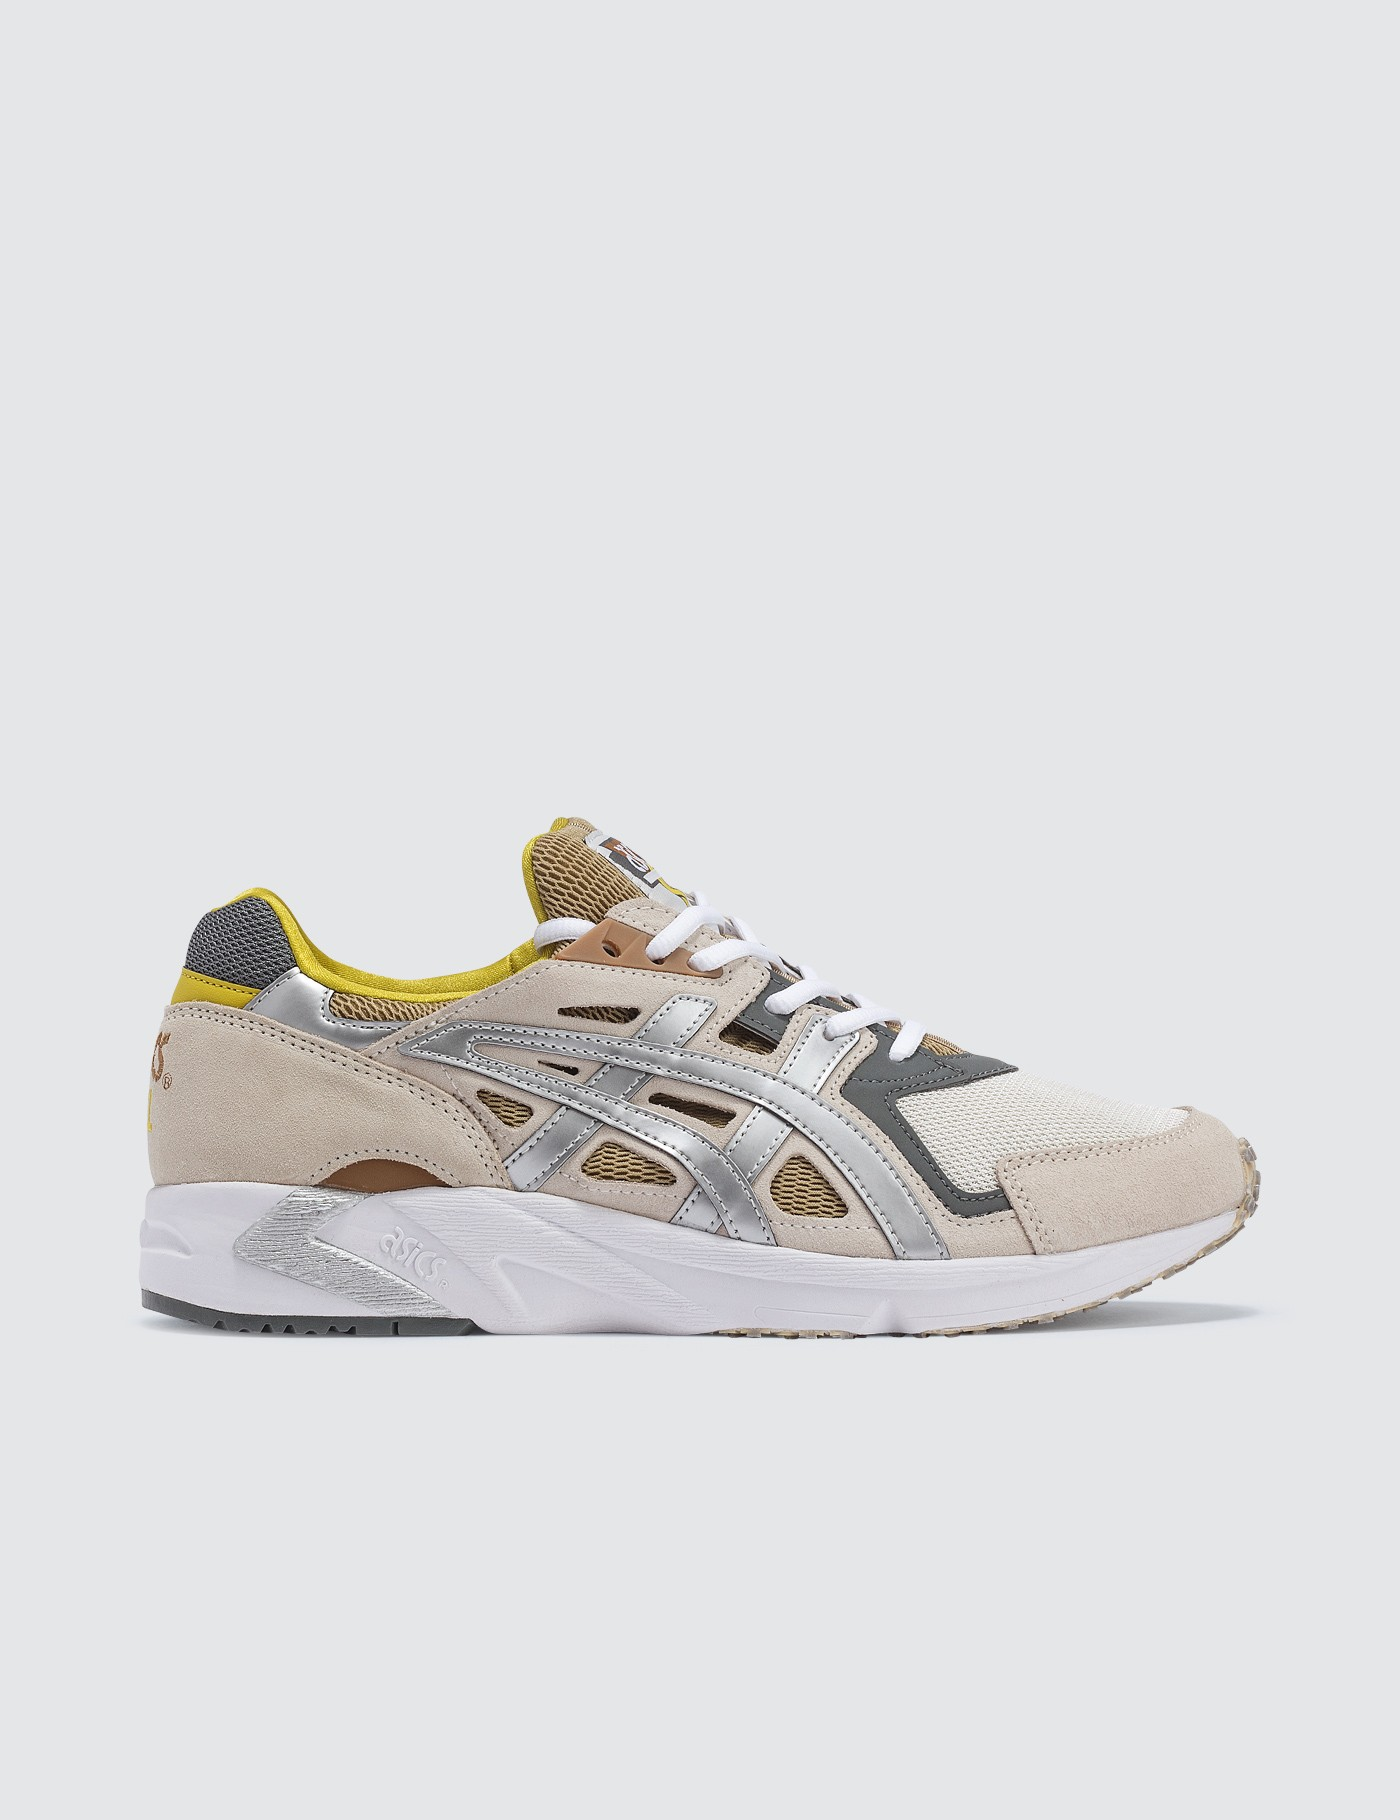 finest selection 1354b a8092 Gel-Ds Trainer OG, ASICS